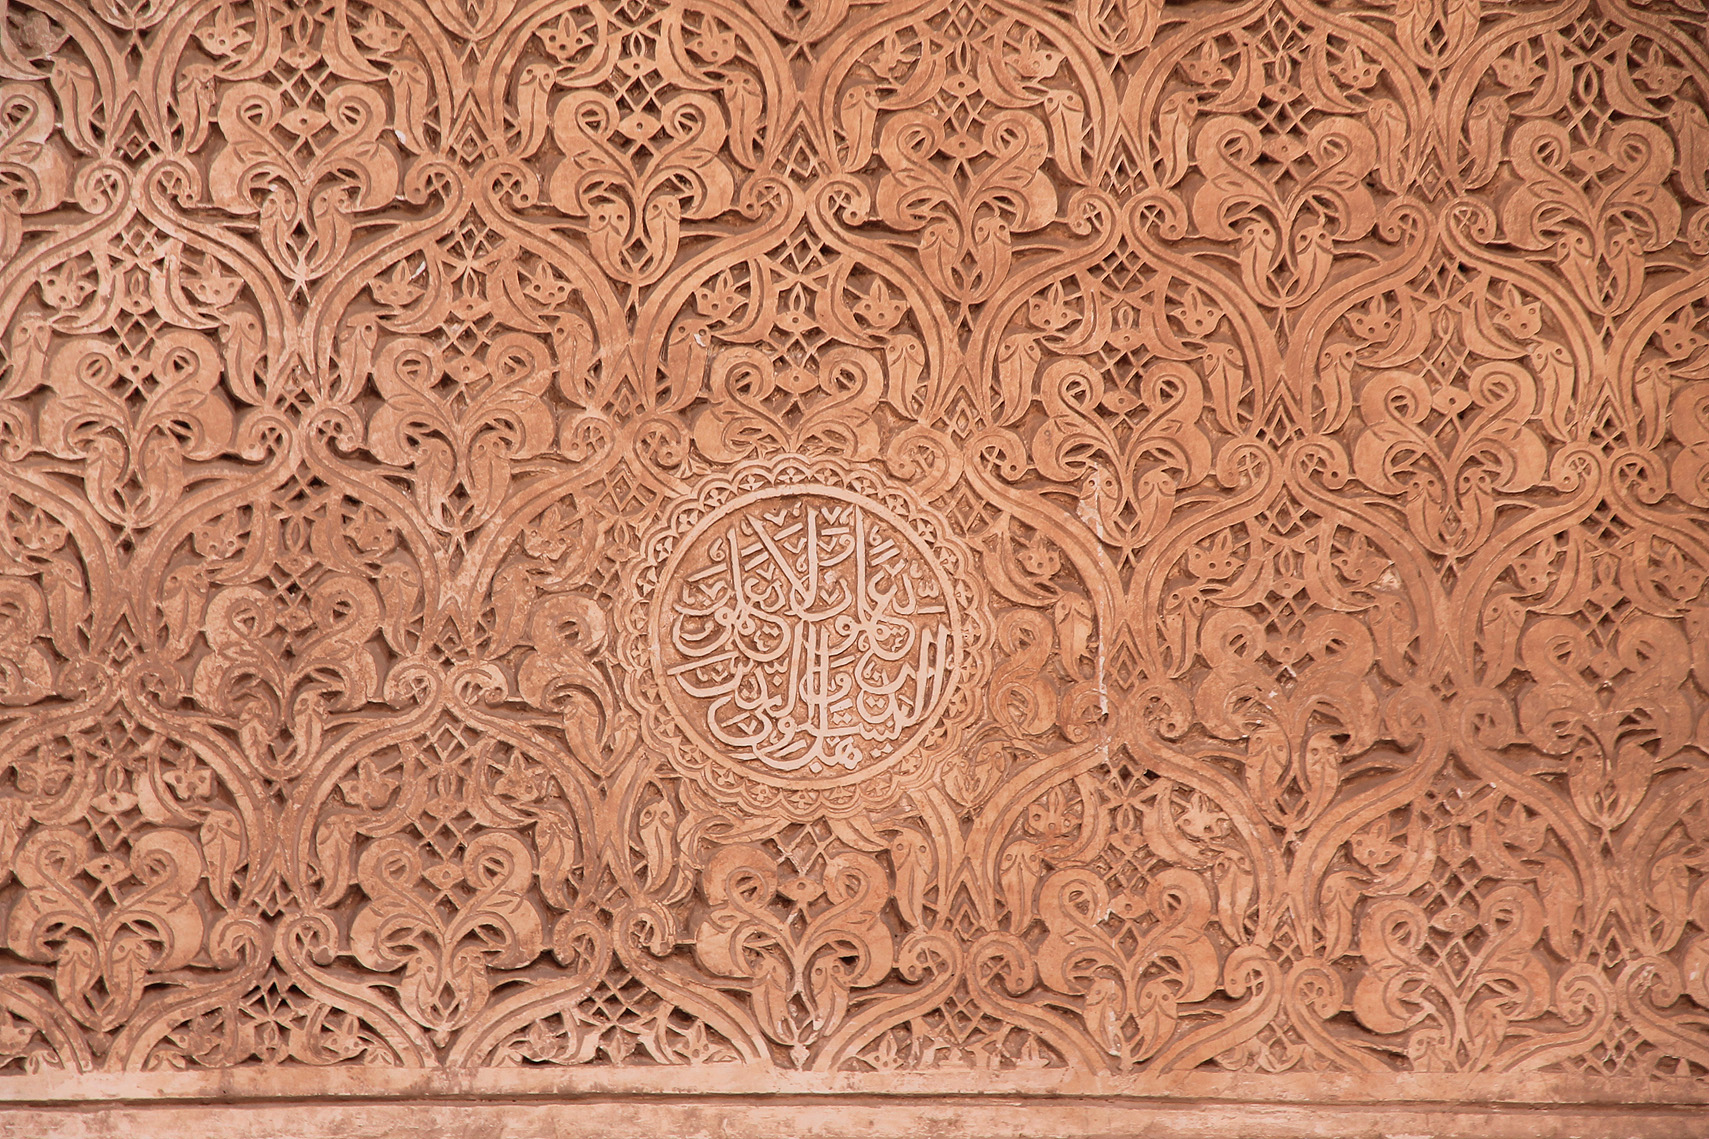 Woodcarving detail.